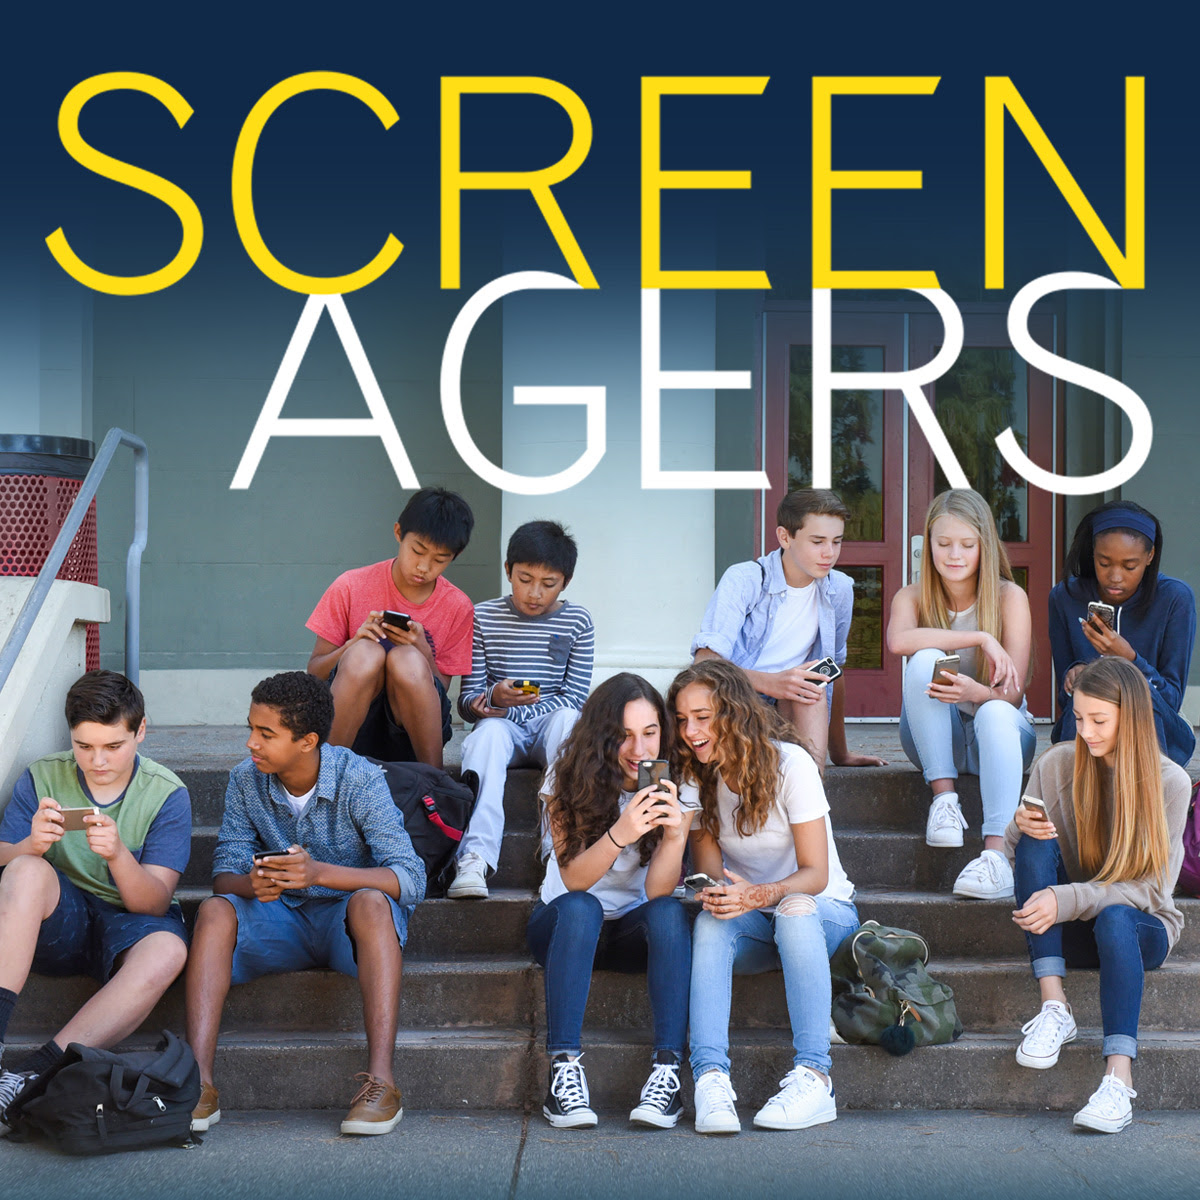 Screenagers Film Presented By Ken Caryl Middle School